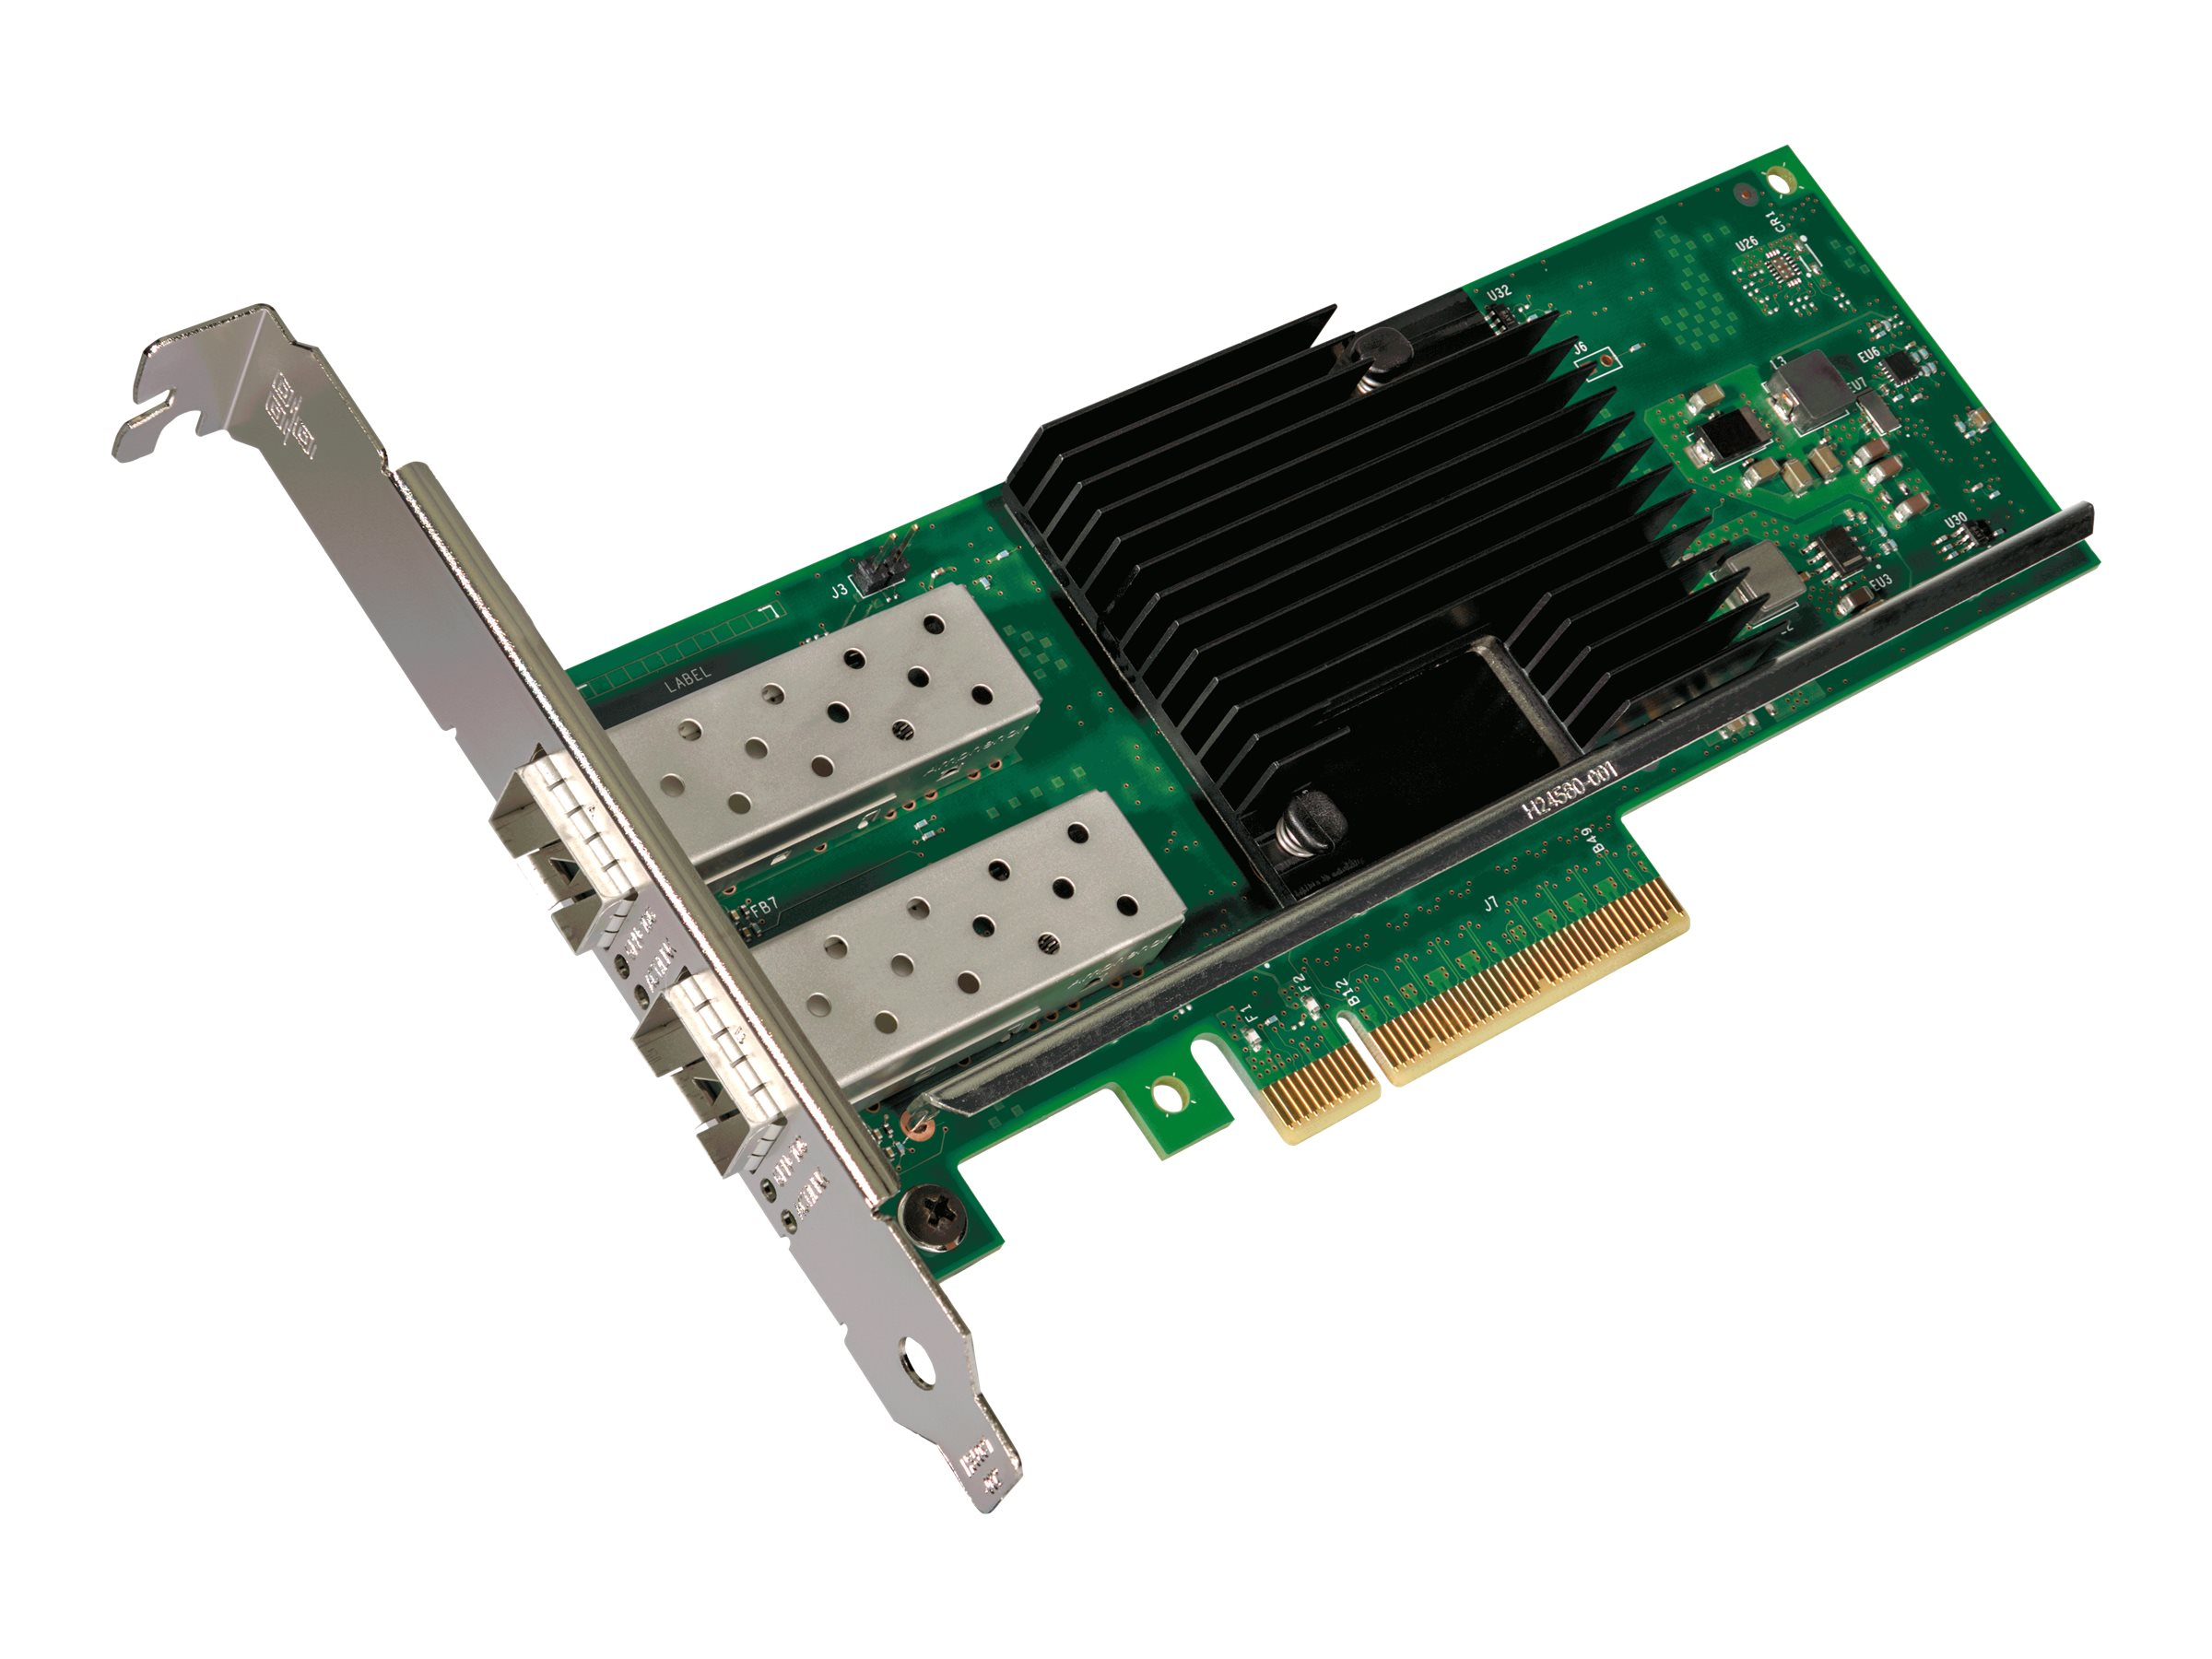 Intel Ethernet Converged Network Adapter X710-DA2 - Netzwerkadapter - PCIe 3.0 x8 Low-Profile - 10 Gigabit SFP+ x 2